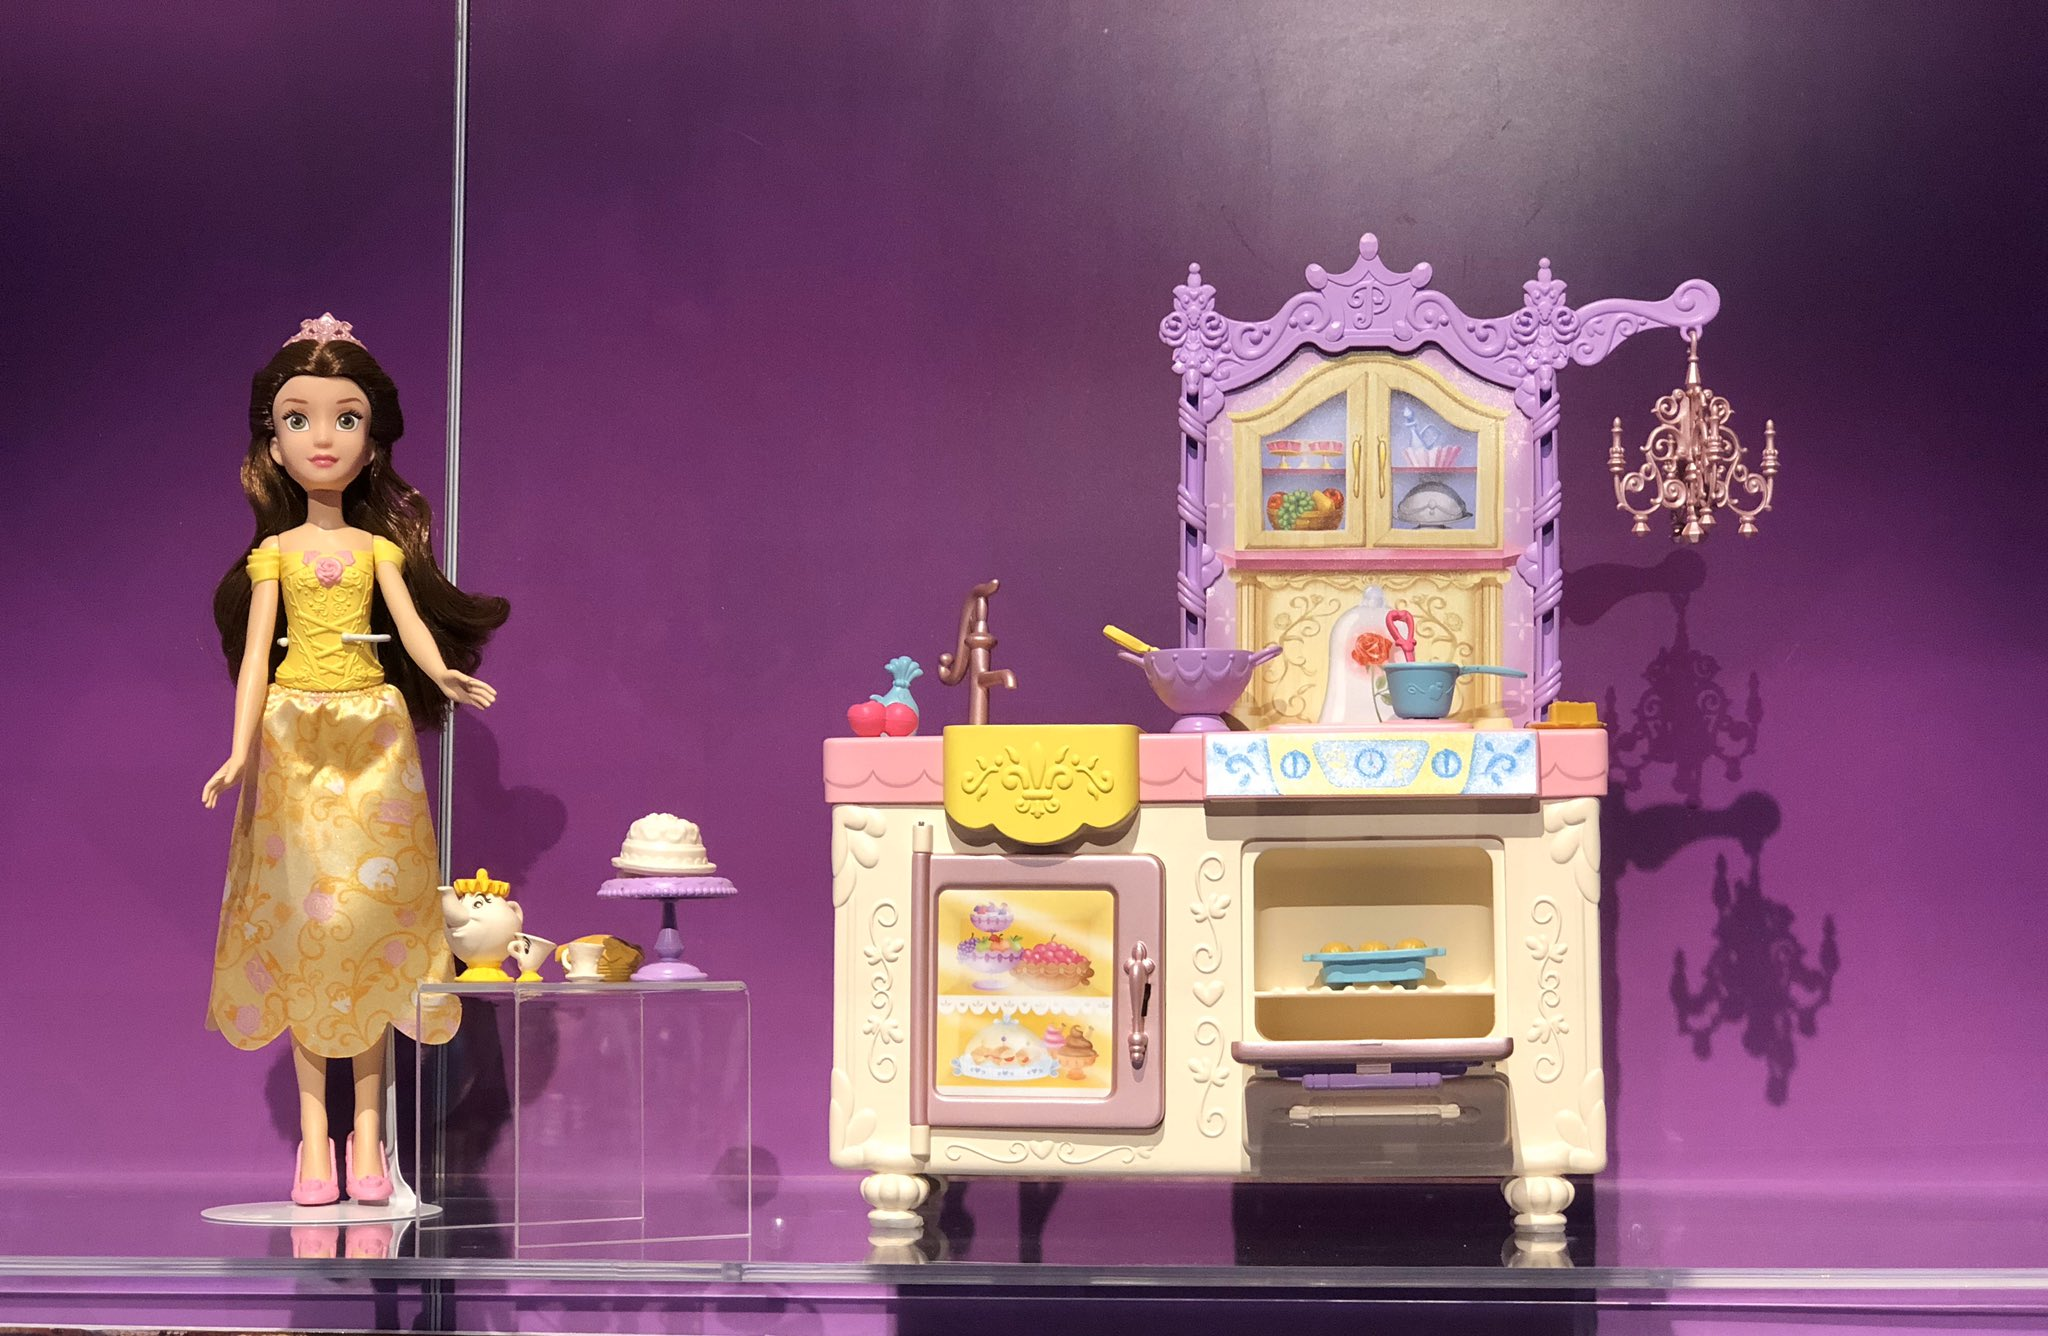 Hasbro On Twitter The Disney Princess Belle S Royal Kitchen Playset Is Complete With Lots Of Fun Kitchen Accessories And More Because Who Doesn T Wear A Tiara When They Cook Hasbrotoyfair Tfny